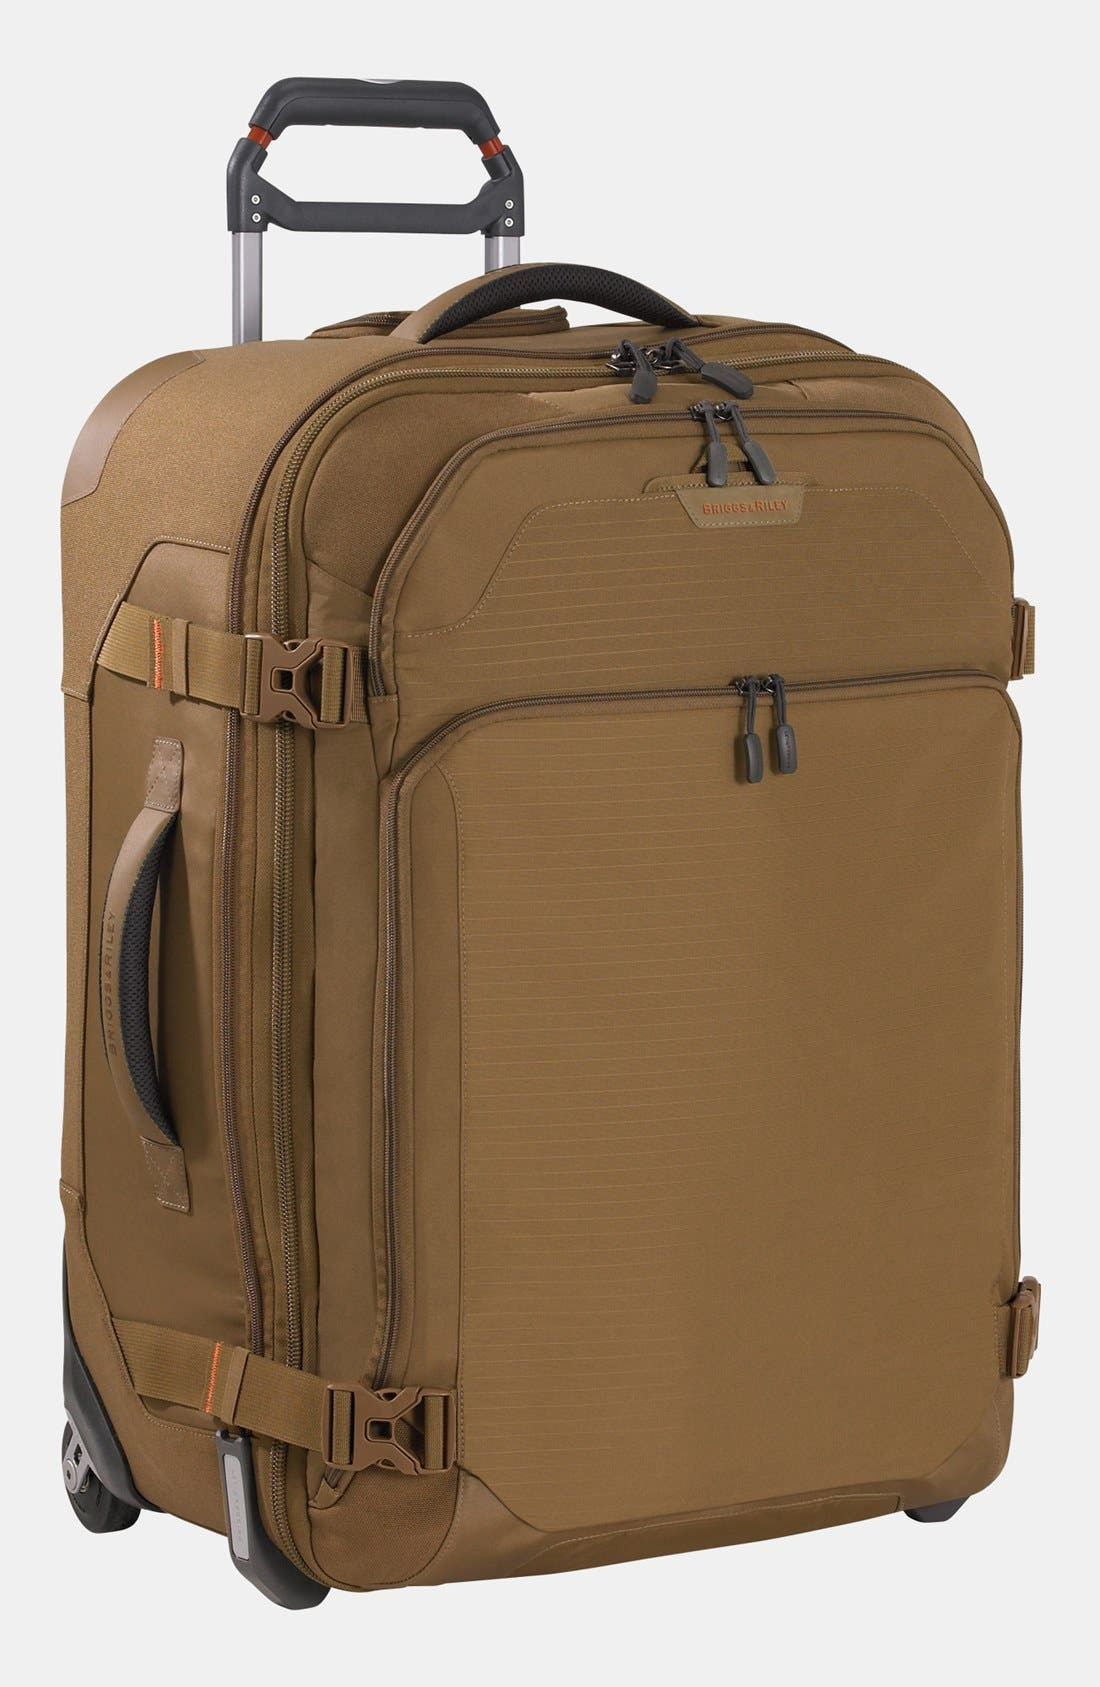 Alternate Image 1 Selected - Briggs & Riley 'Explore' Upright Rolling Suitcase (25 Inch)